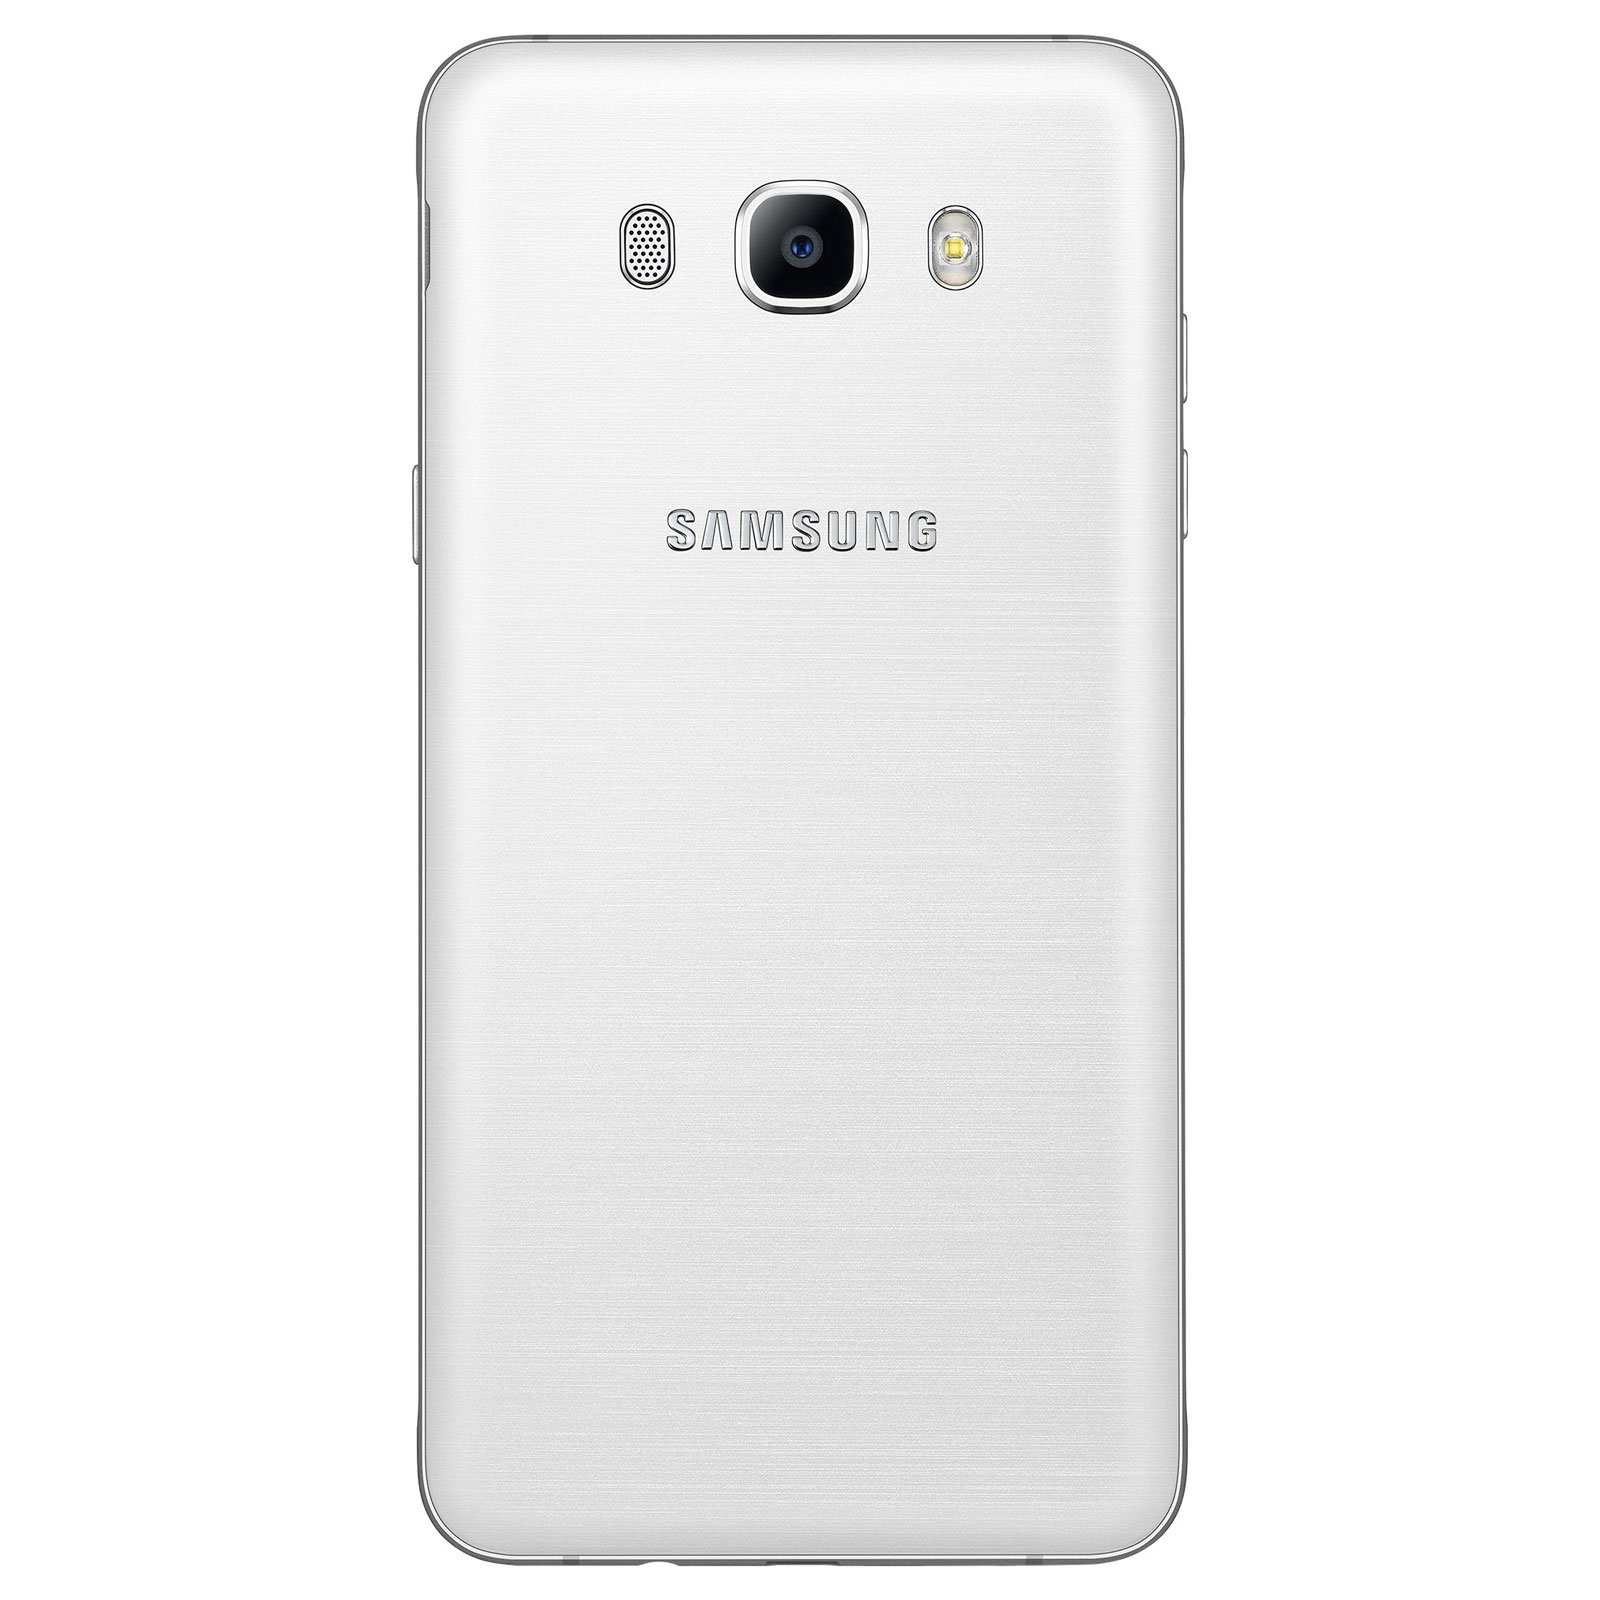 samsung galaxy j7 2016 blanc mobile smartphone samsung sur. Black Bedroom Furniture Sets. Home Design Ideas